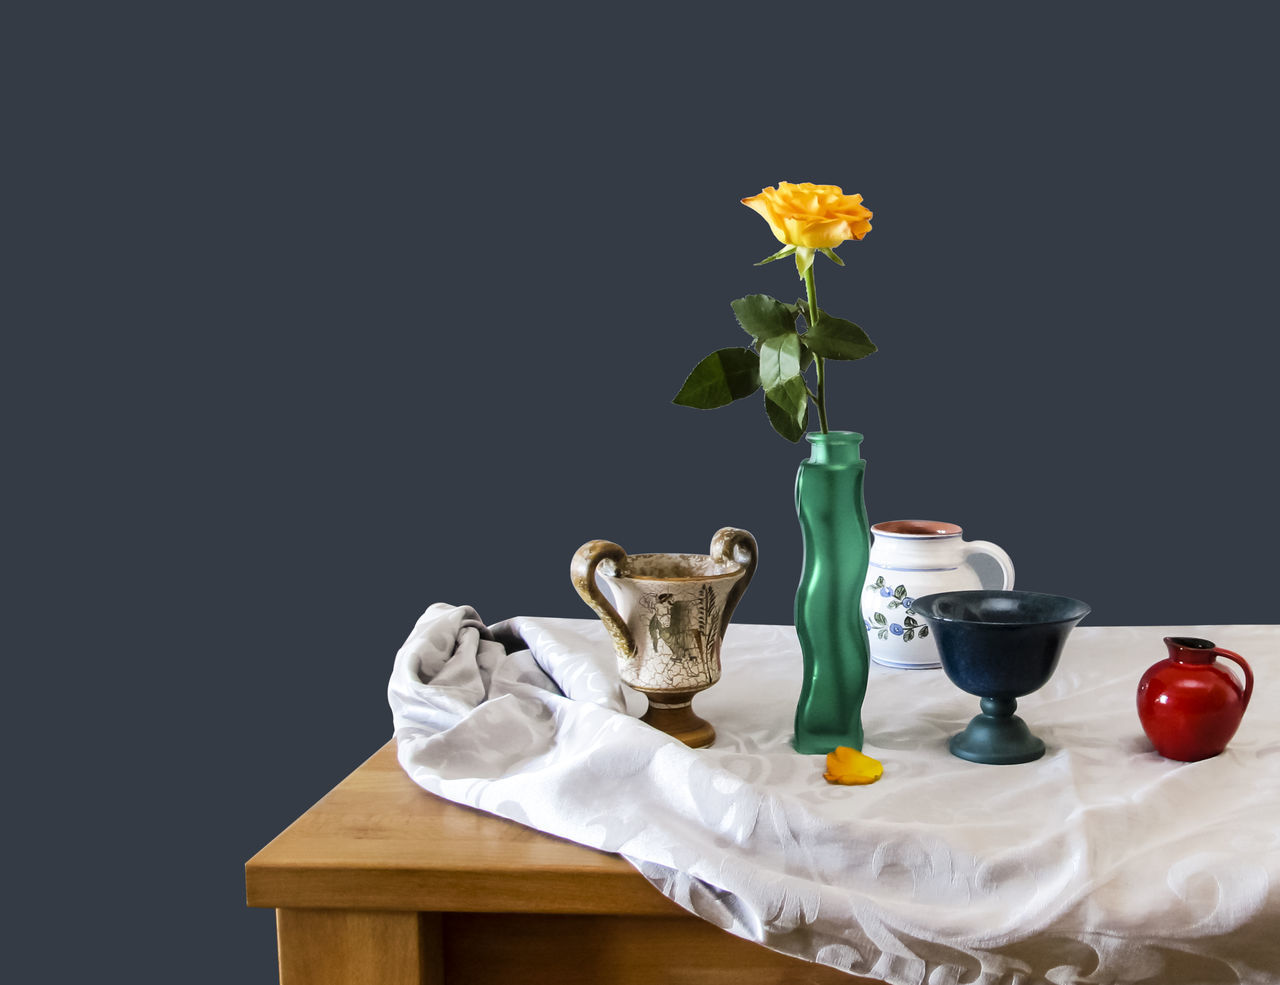 Close-up Composition Cultures Decoration Elégance Flower Freshness Glass Home Interior IKEA Indoors  Motif  Fine Art photography Roseflower Rose🌹 Single Object Still Still Life Studio Shot Table Variation Vase Vase Vases Wall